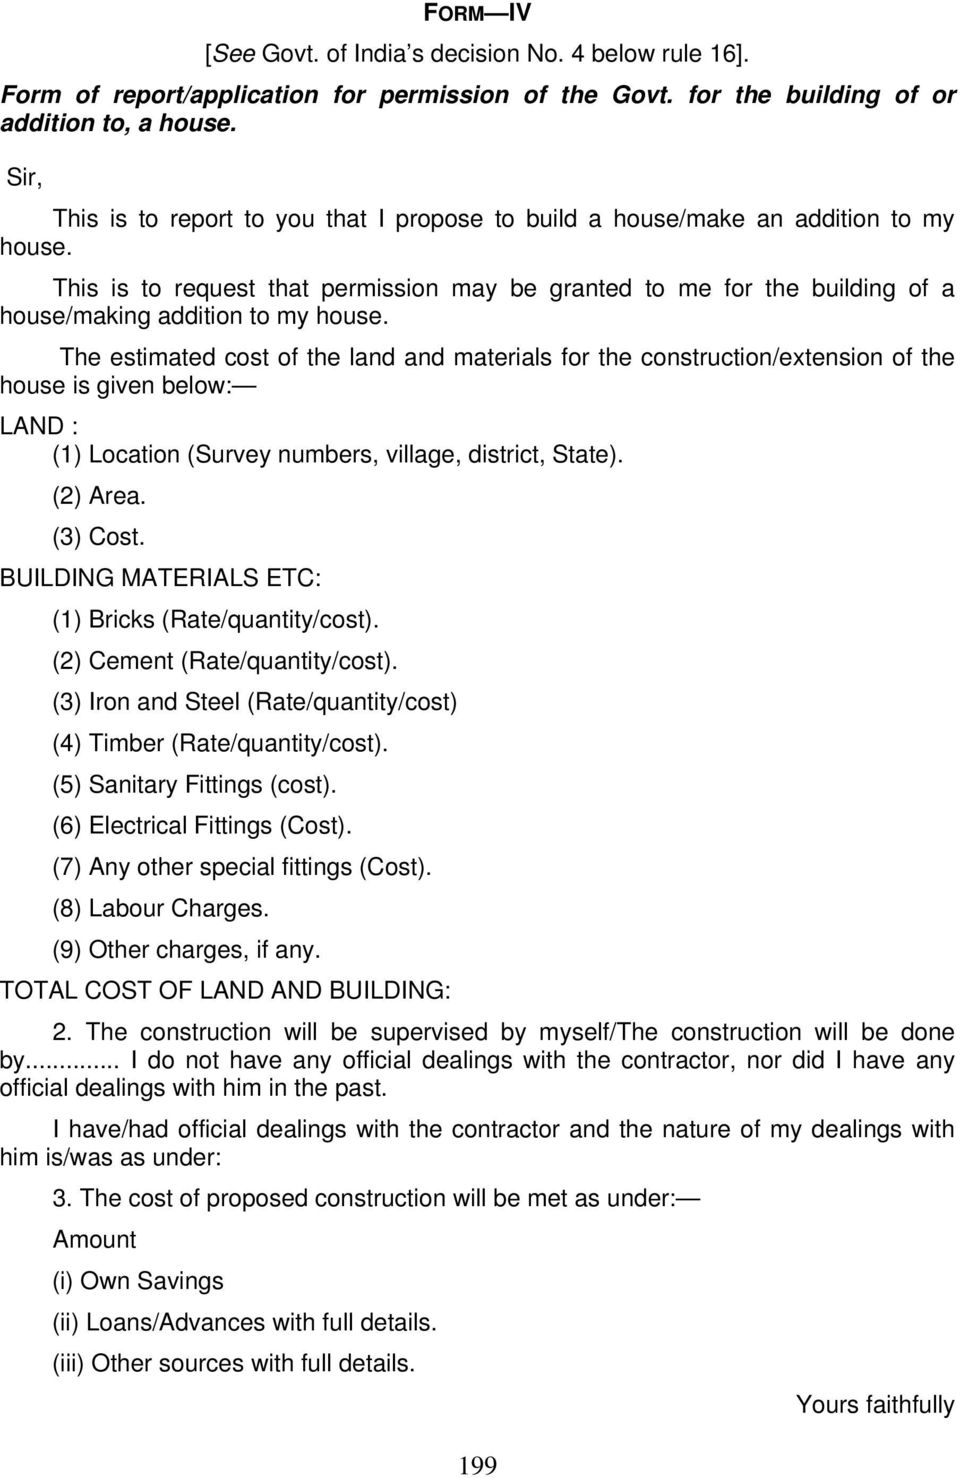 This is to request that permission may be granted to me for the building of a house/making addition to my house.